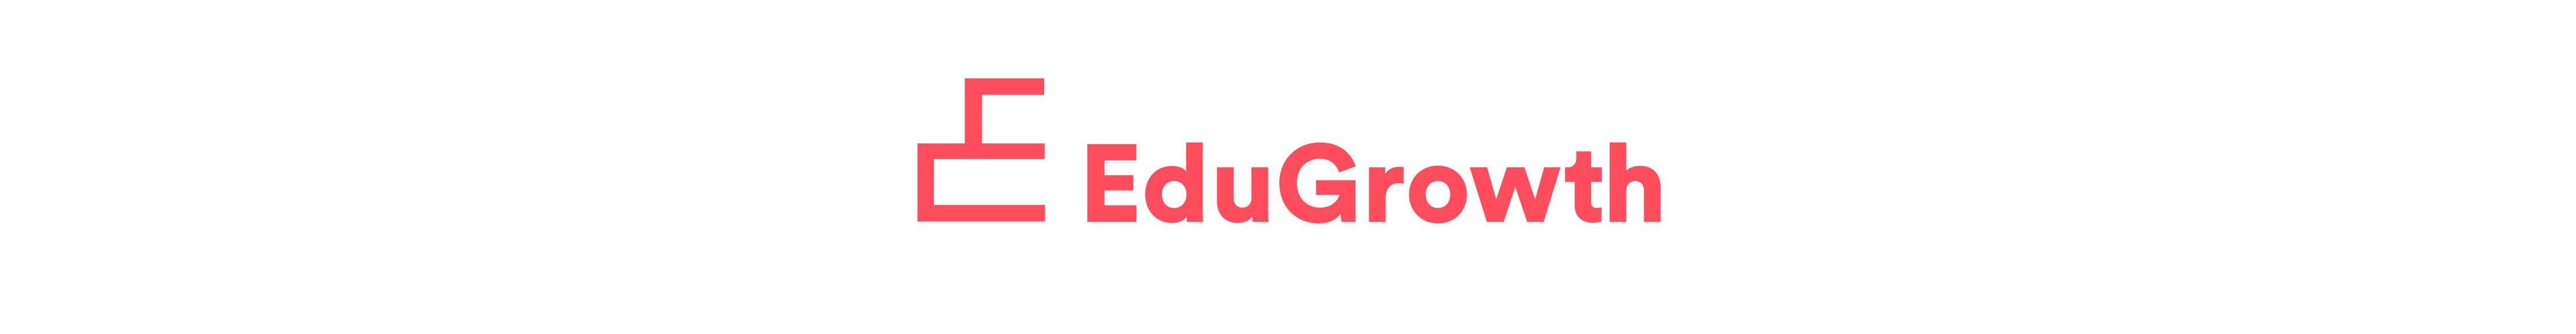 EduGrowth footer